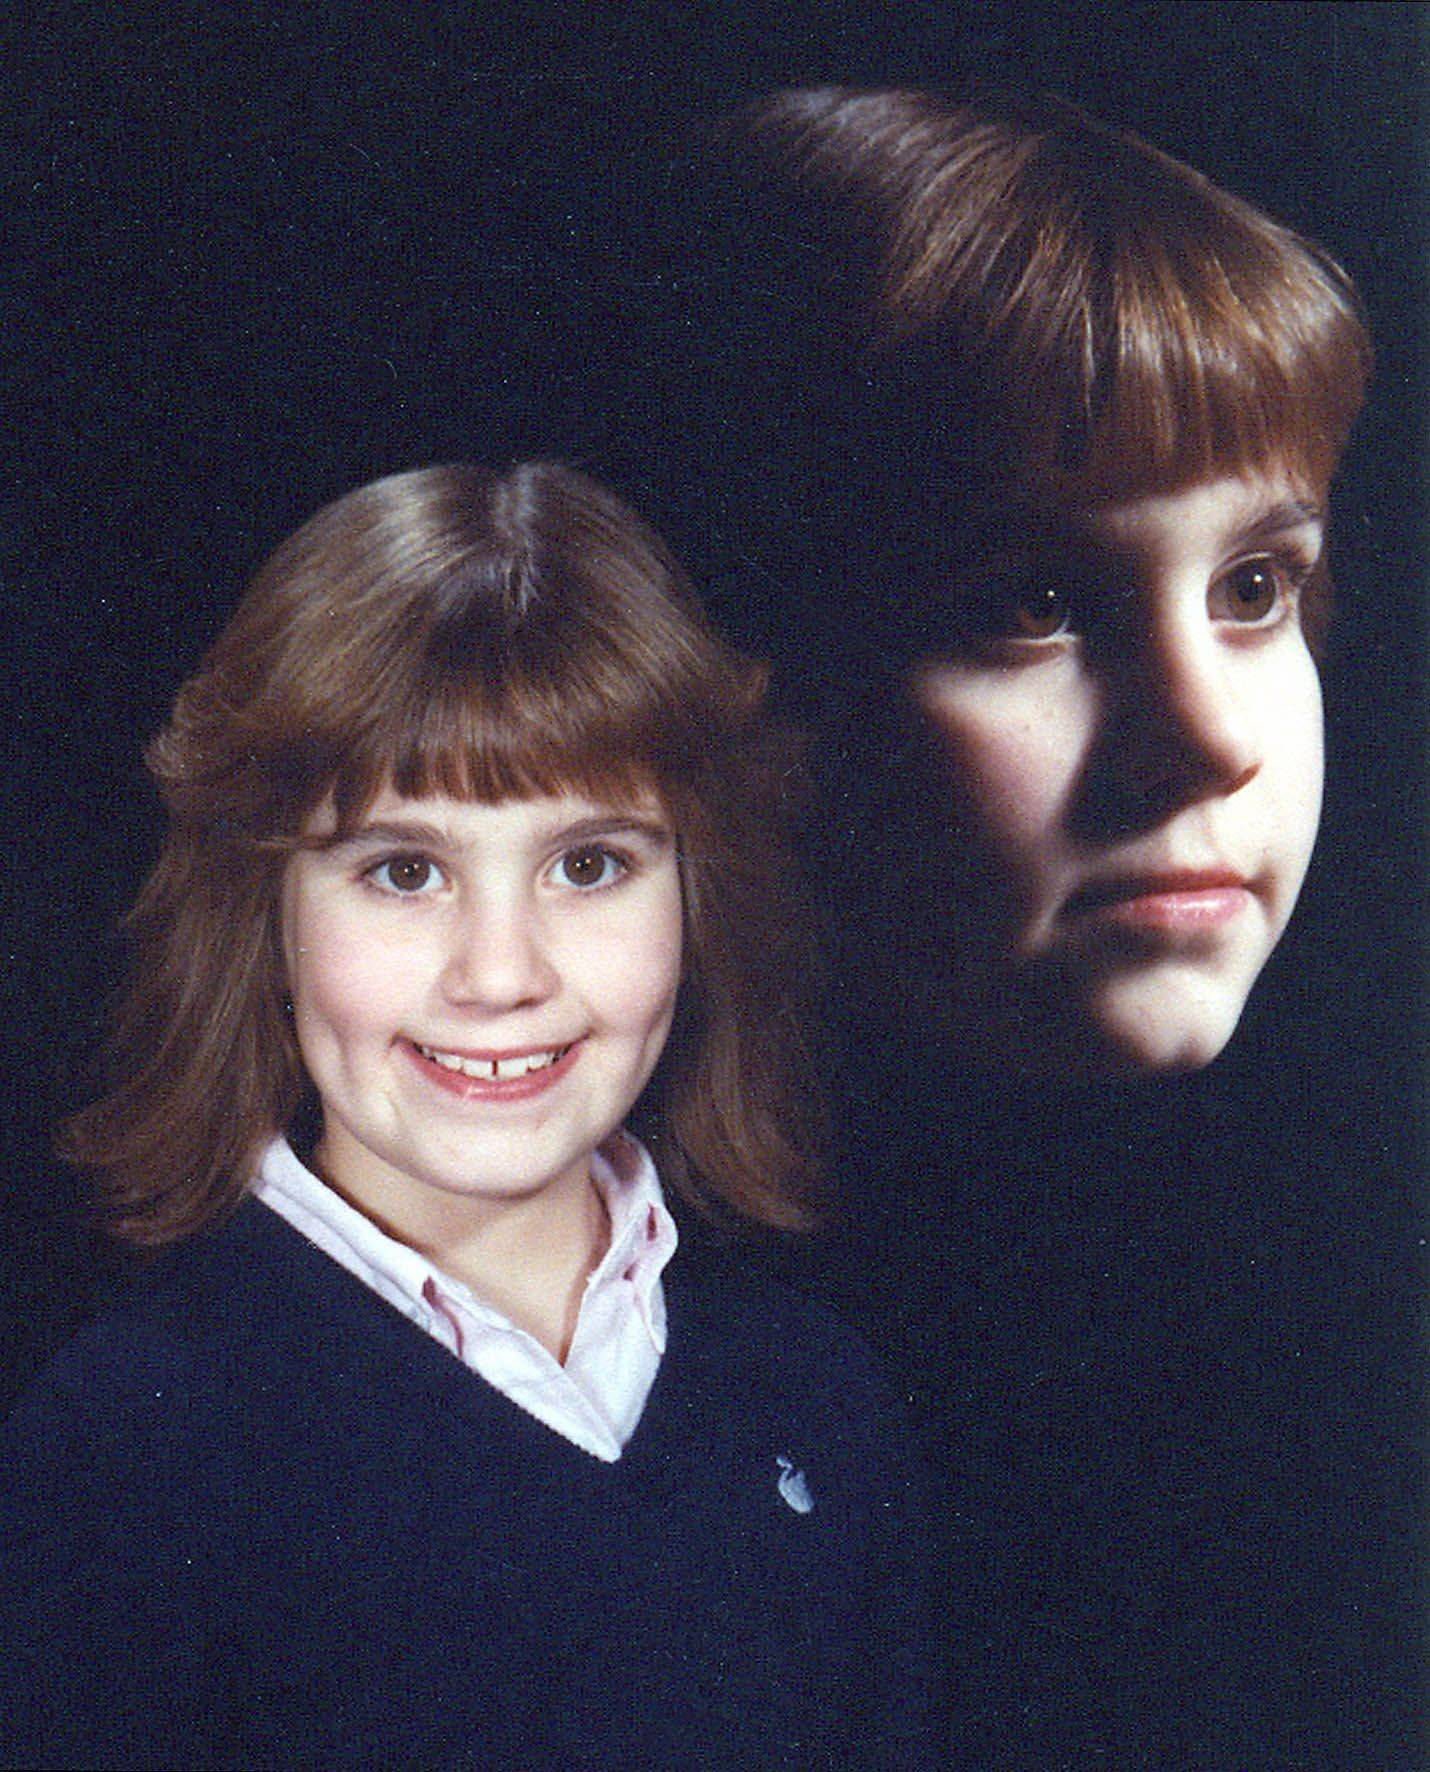 Jeanine Nicarico of Naperville, age 10, taken on Feb. 23, 1983, just two days before her murder.